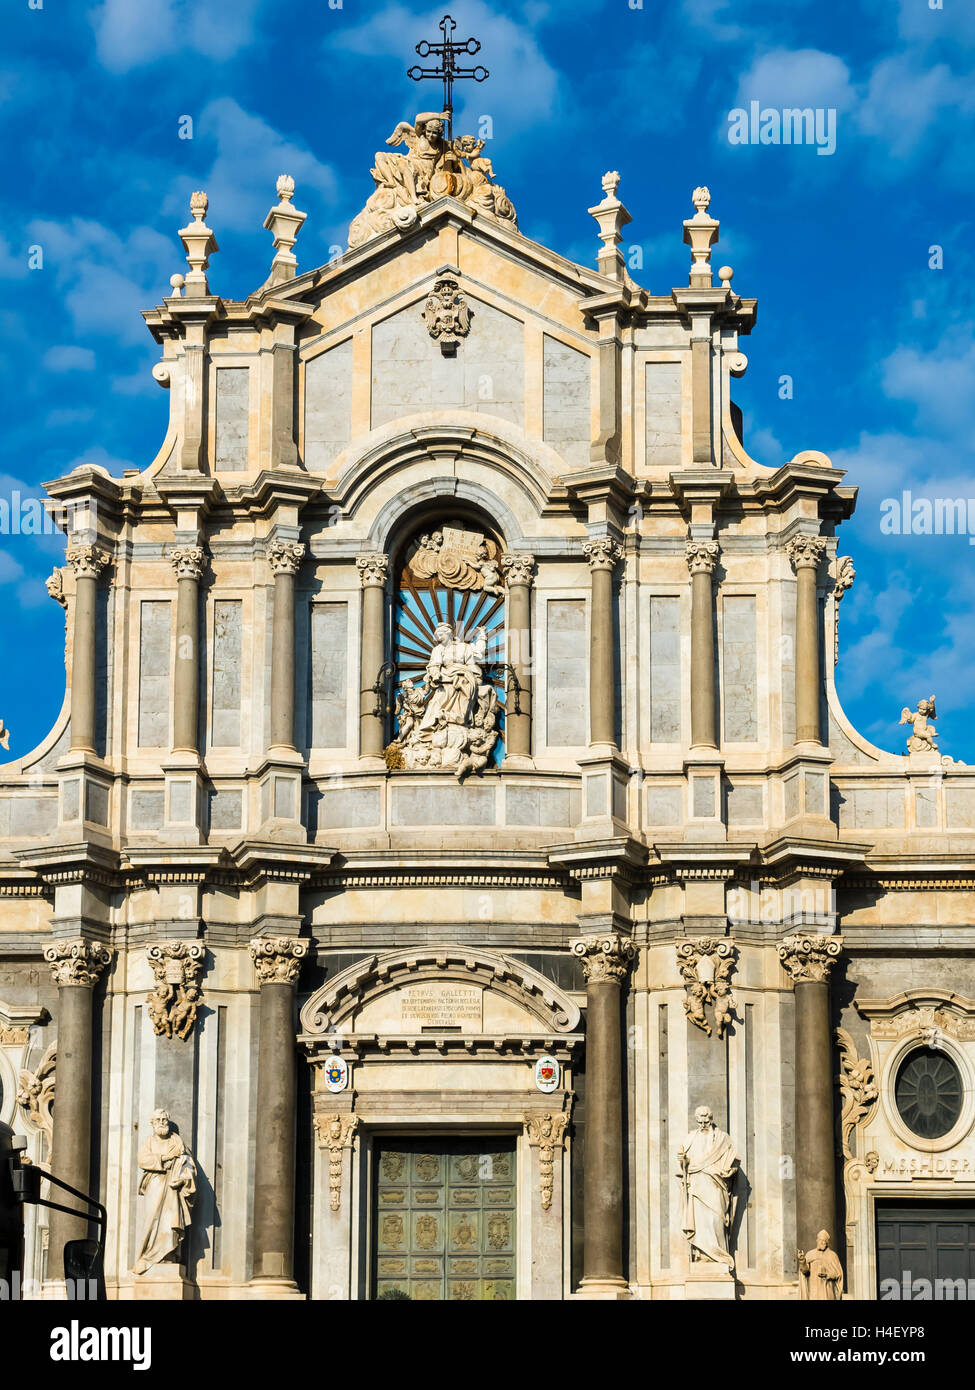 Cathedral of St. Agata, Piazza del Doumo, Province of Catania, Sicily, Italy - Stock Image